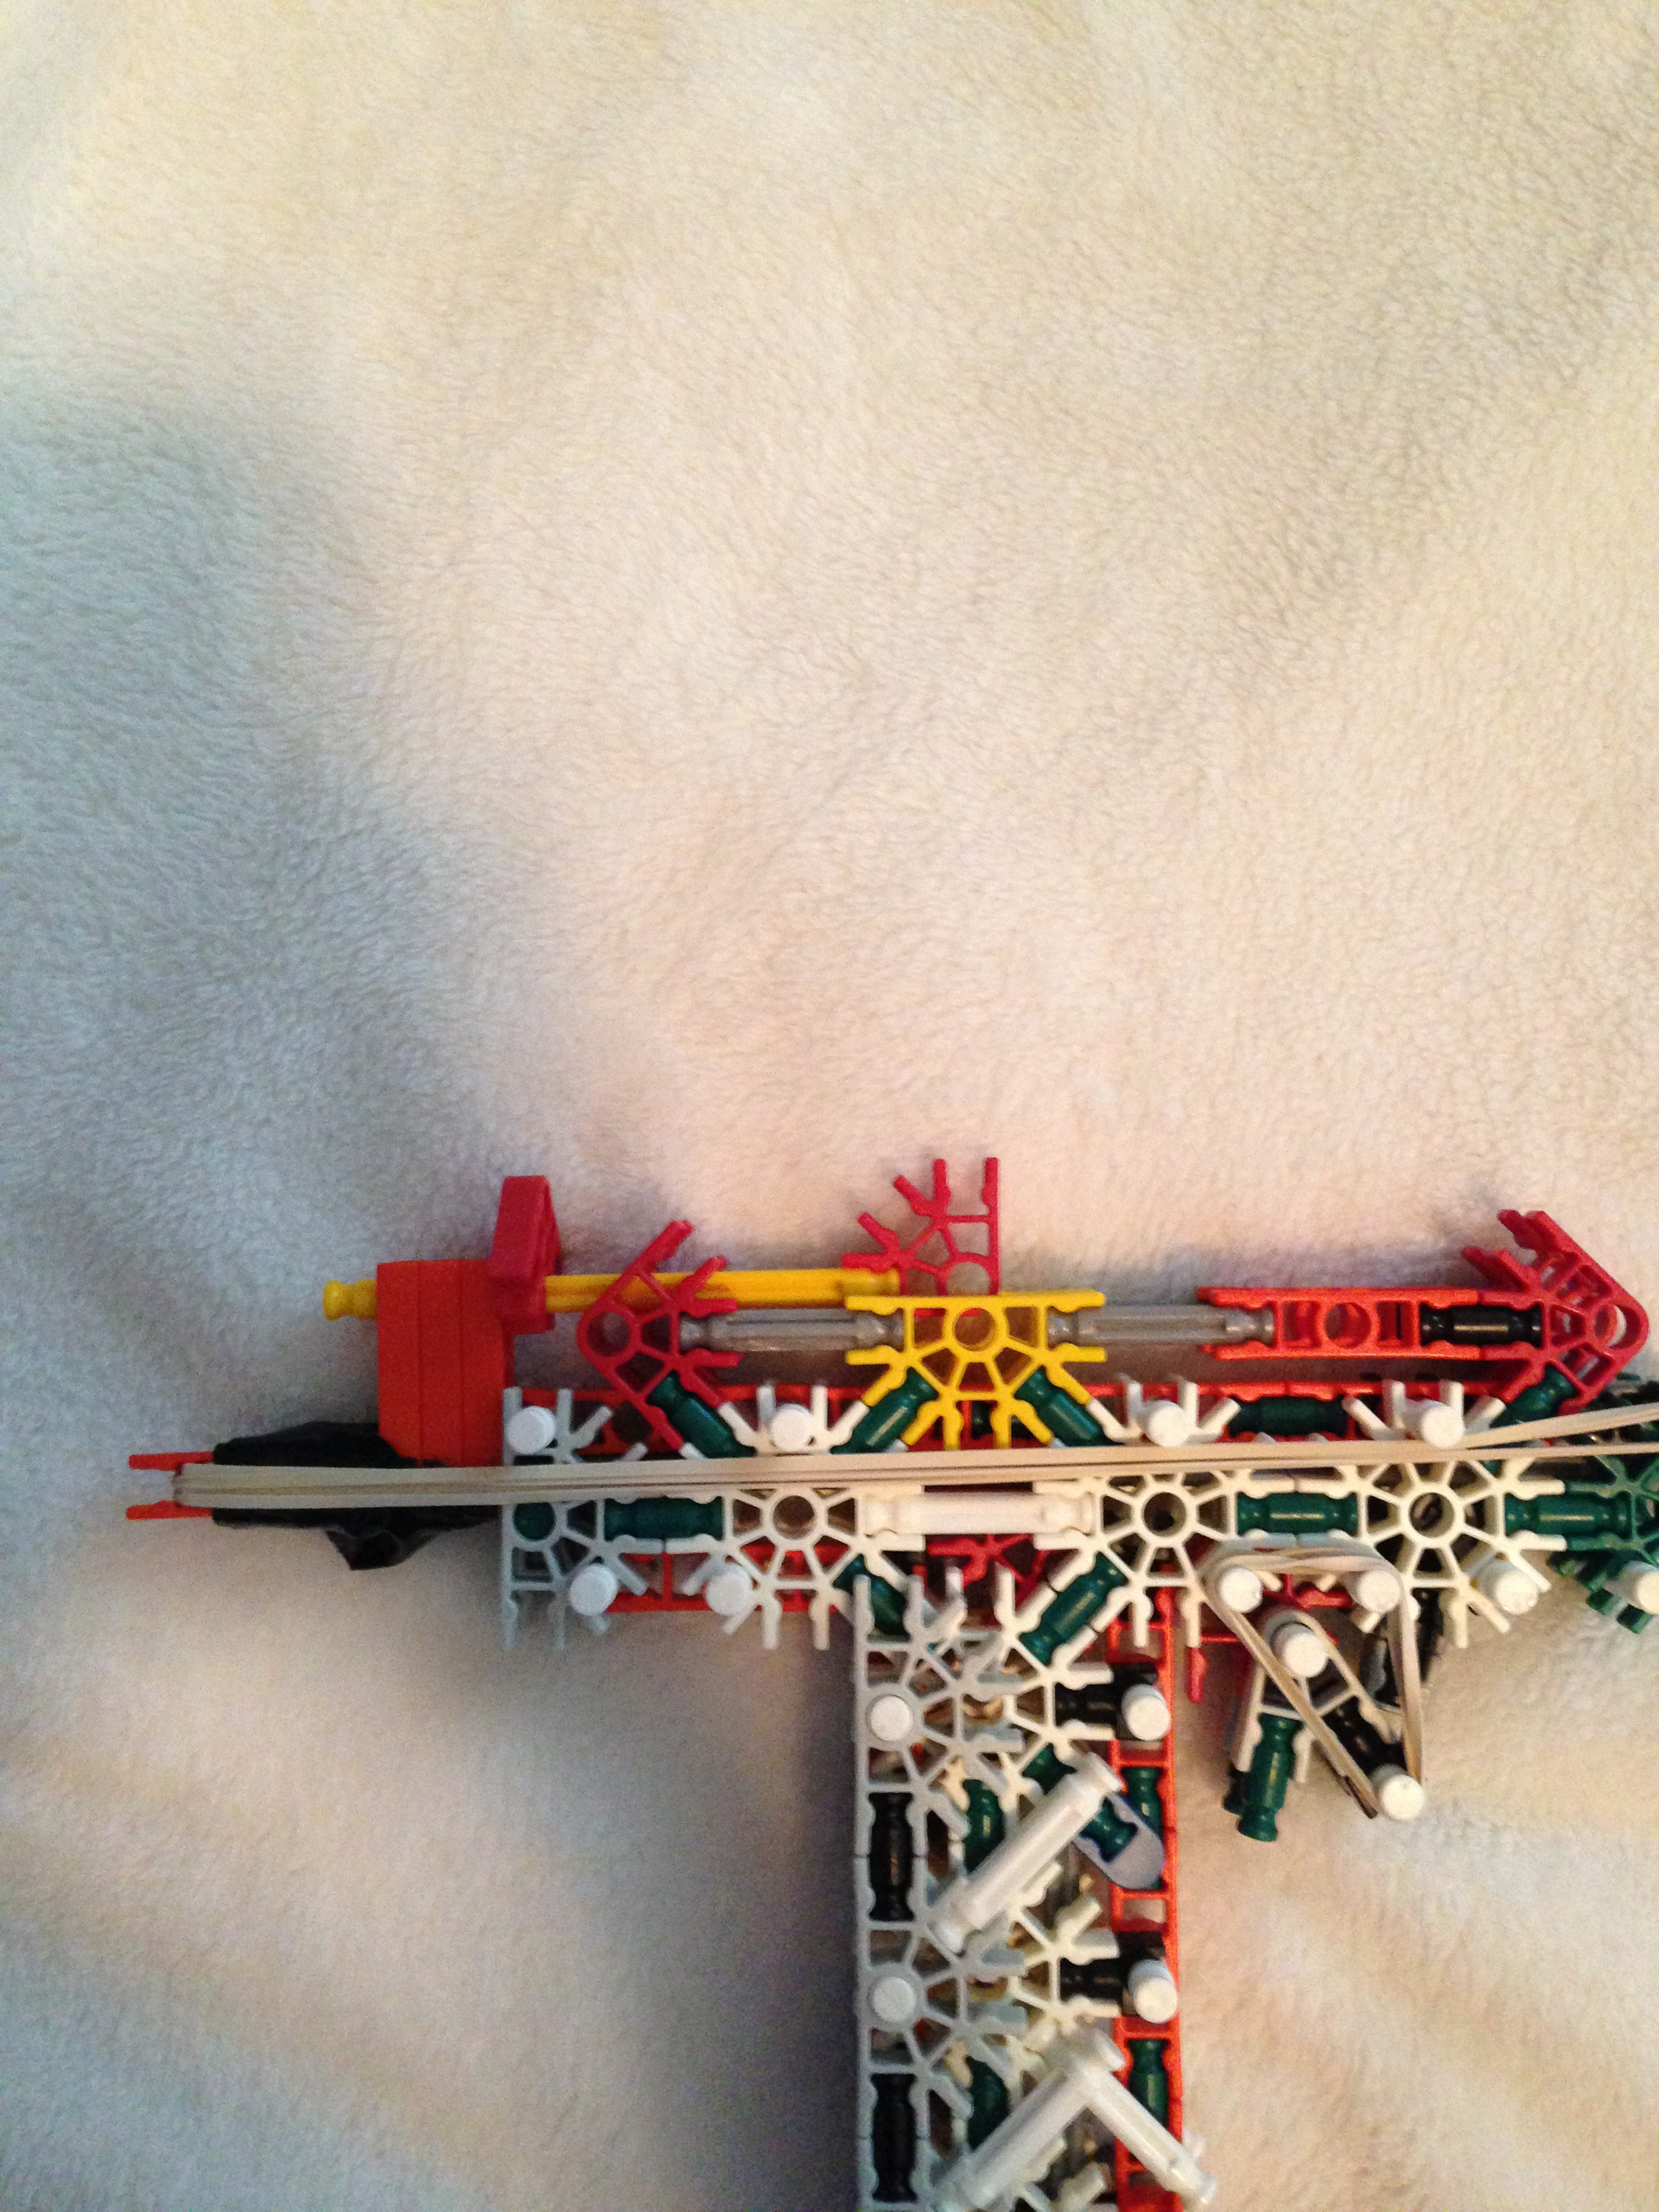 Picture of Paper Airplane Launcher Mac 10 Mod